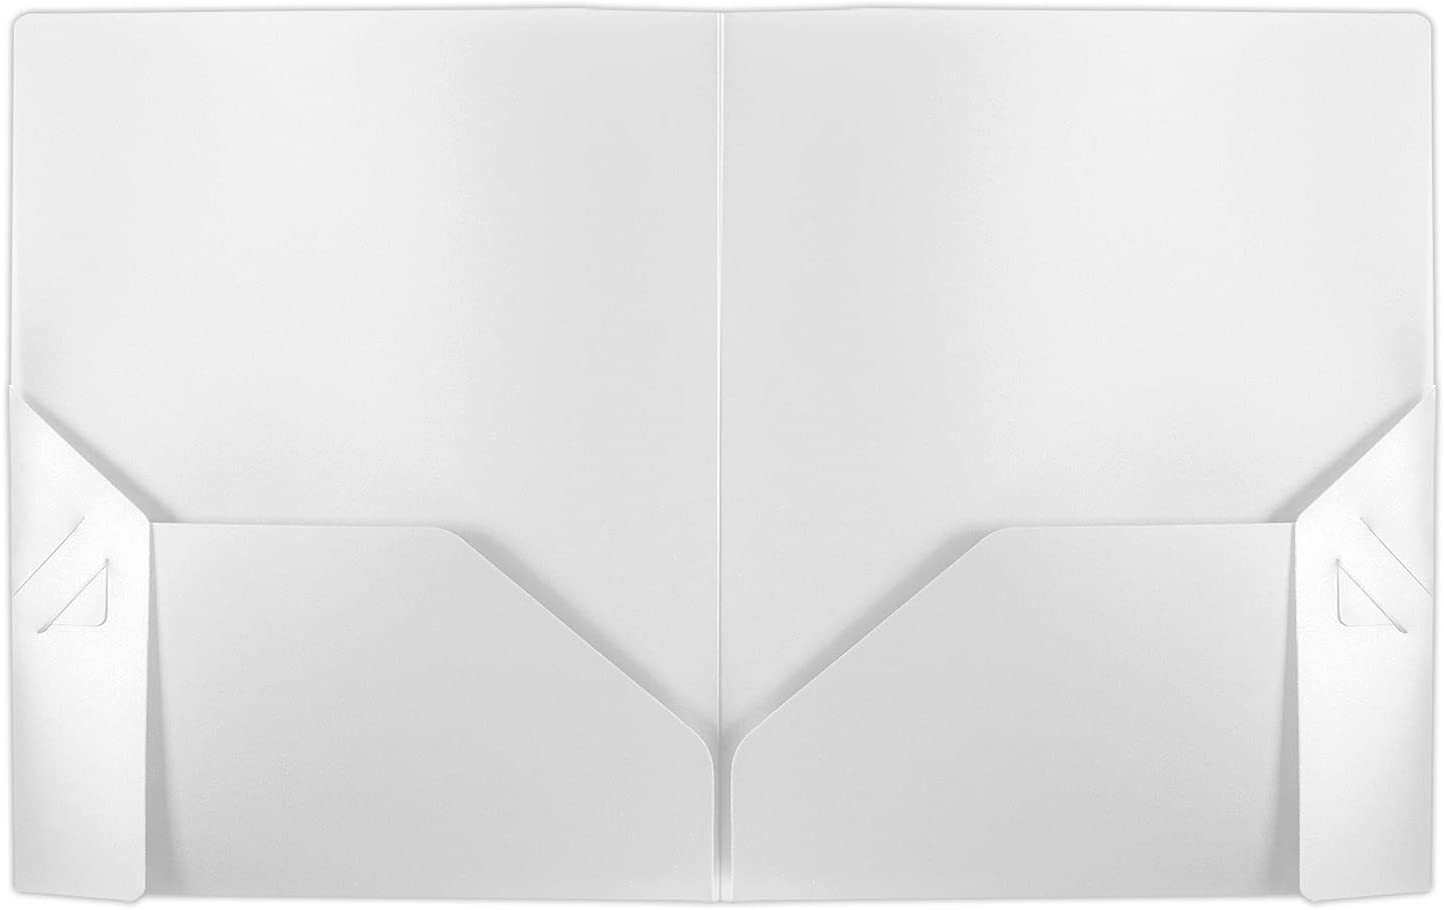 Poly Folders - Heavy Duty Two Pocket Folders for School, Documents, Classrooms, Homeschool Supplies, 0.16 White Folder - 50 Pack - PF-0916-WH-50